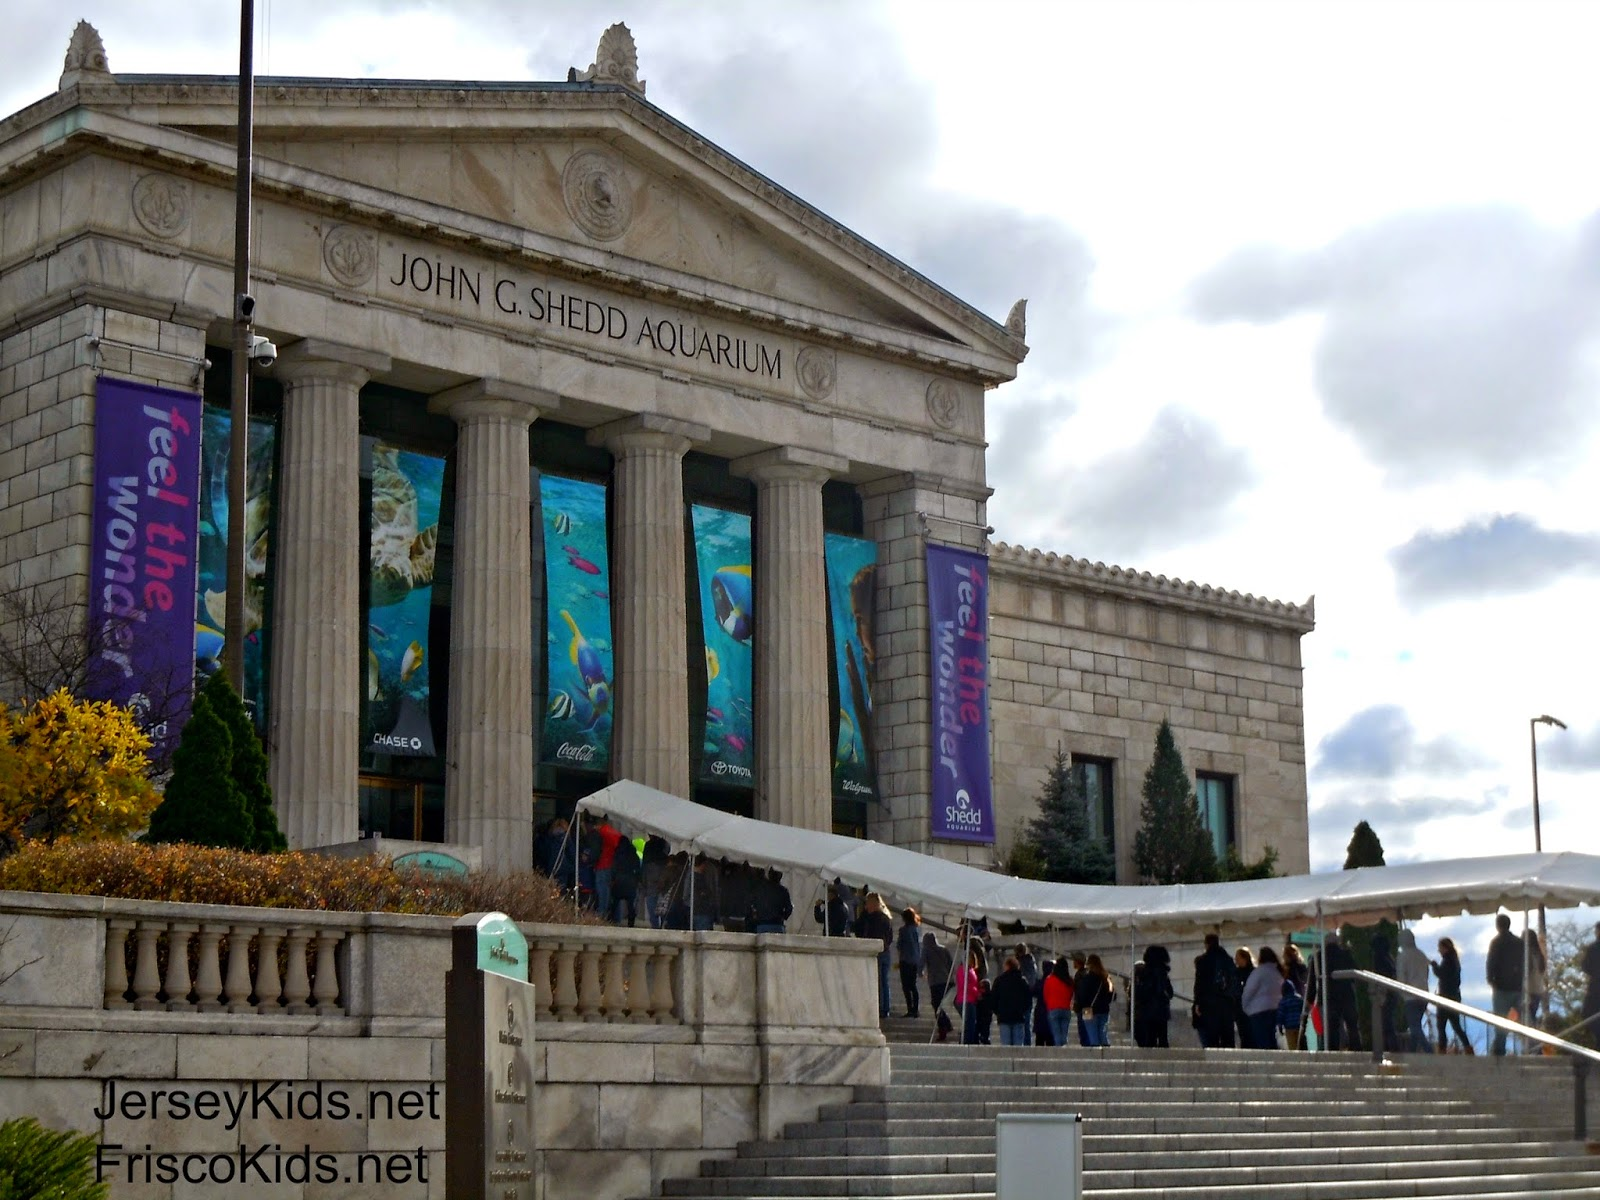 Shedd Aquarium is home to Pacific White-Sided dolphins. Take a degree tour of an underwater reef community. The 90,gallon Caribbean Reef exhibit, at the hub of Shedd's original galleries, is a great place to start your visit.